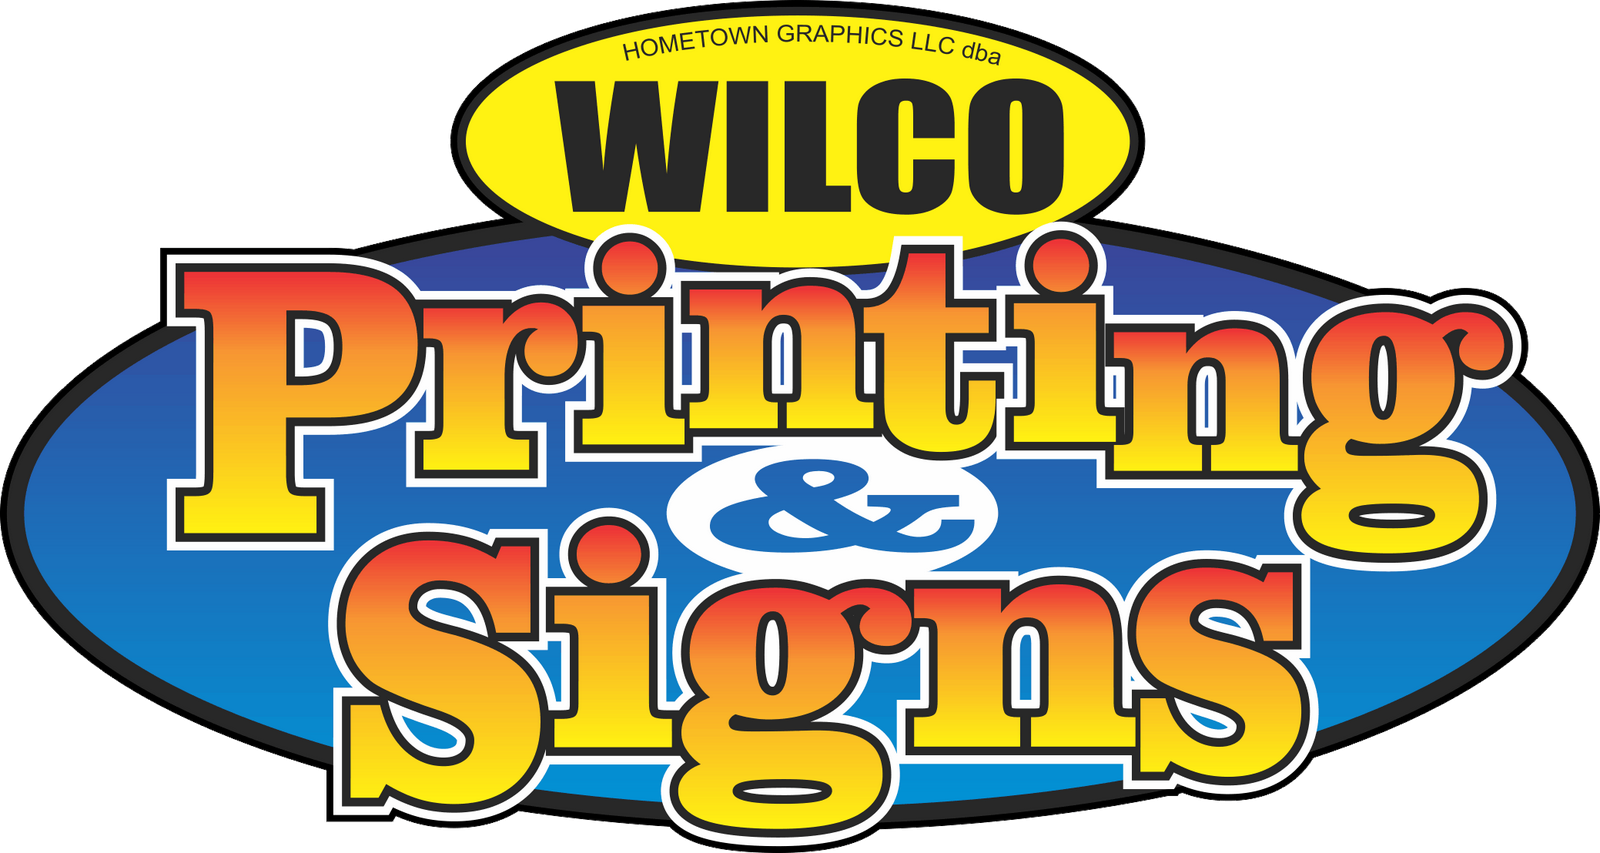 Wilco Printing & Signs is a full service commercial printing and sign company located in Braselton , GA providing Graphic Design, Commercial Printing, Business Forms and Materials, Brochures, Postcards, Programs, Menus, Wide Format Printing, Architectural Drawings and Plans, Interior,  Exterior Signs, Sign Systems, Directional Signs, Facility Signs, Banners, Feather Flags, Retractable Banners, Outdoor Banners, Real Estate Signs, Yard Signs, Vehicle Graphics, Fleet Graphics, Vehicle Wraps, Door Decals,  Floor Decals, Vinyl Graphics, Labels, Stickers, Vinyl Decals, Window Graphics, Hand Painted Window Splashes, Car Tags, Custom Pallet Signs, Apparel, Embroidery, Screen Printing, Heat Press, Athletic, Cheerleading Uniforms, Sublimated Tablecloths, HOPUP Straight Full Height Tension Fabric Display and Promotional Products for trade shows, events and marketing materials.